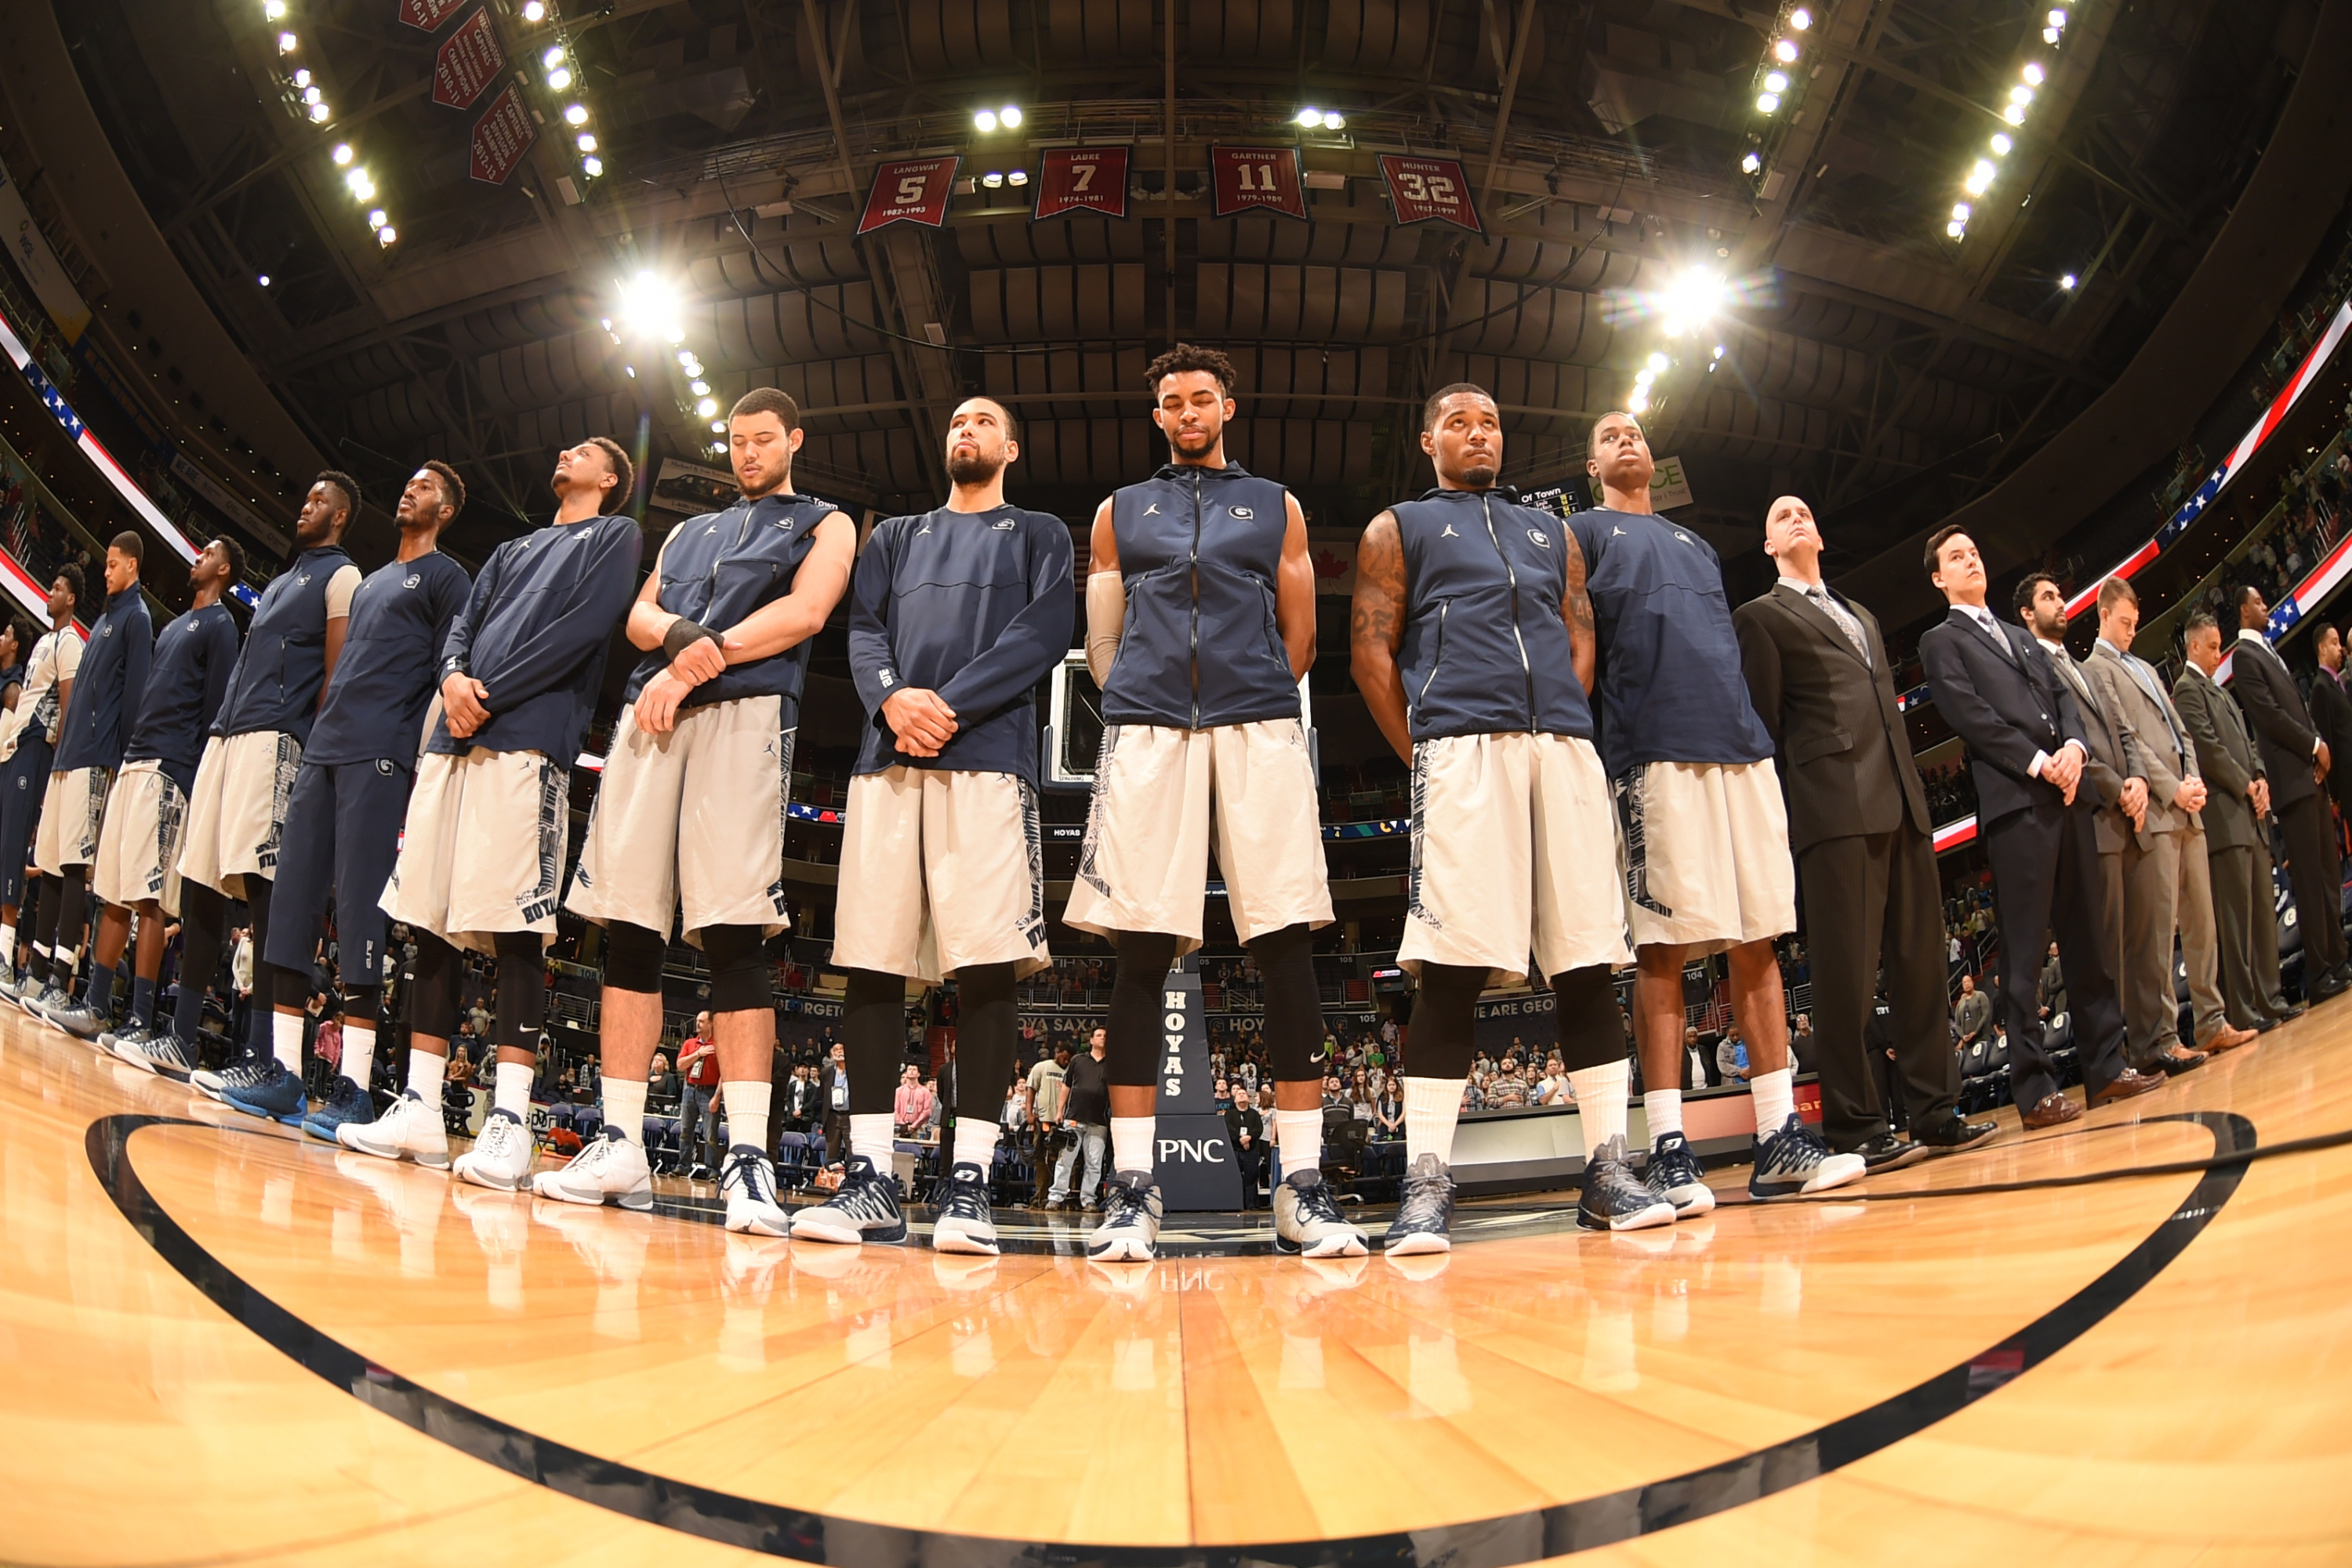 The Georgetown University men's basketball team plays the sixth game of a seven-game home stand on Tuesday, Dec. 15, hosting Monmouth at Verizon Center.  Tipoff at the team's downtown home is slated for 7:30 p.m.